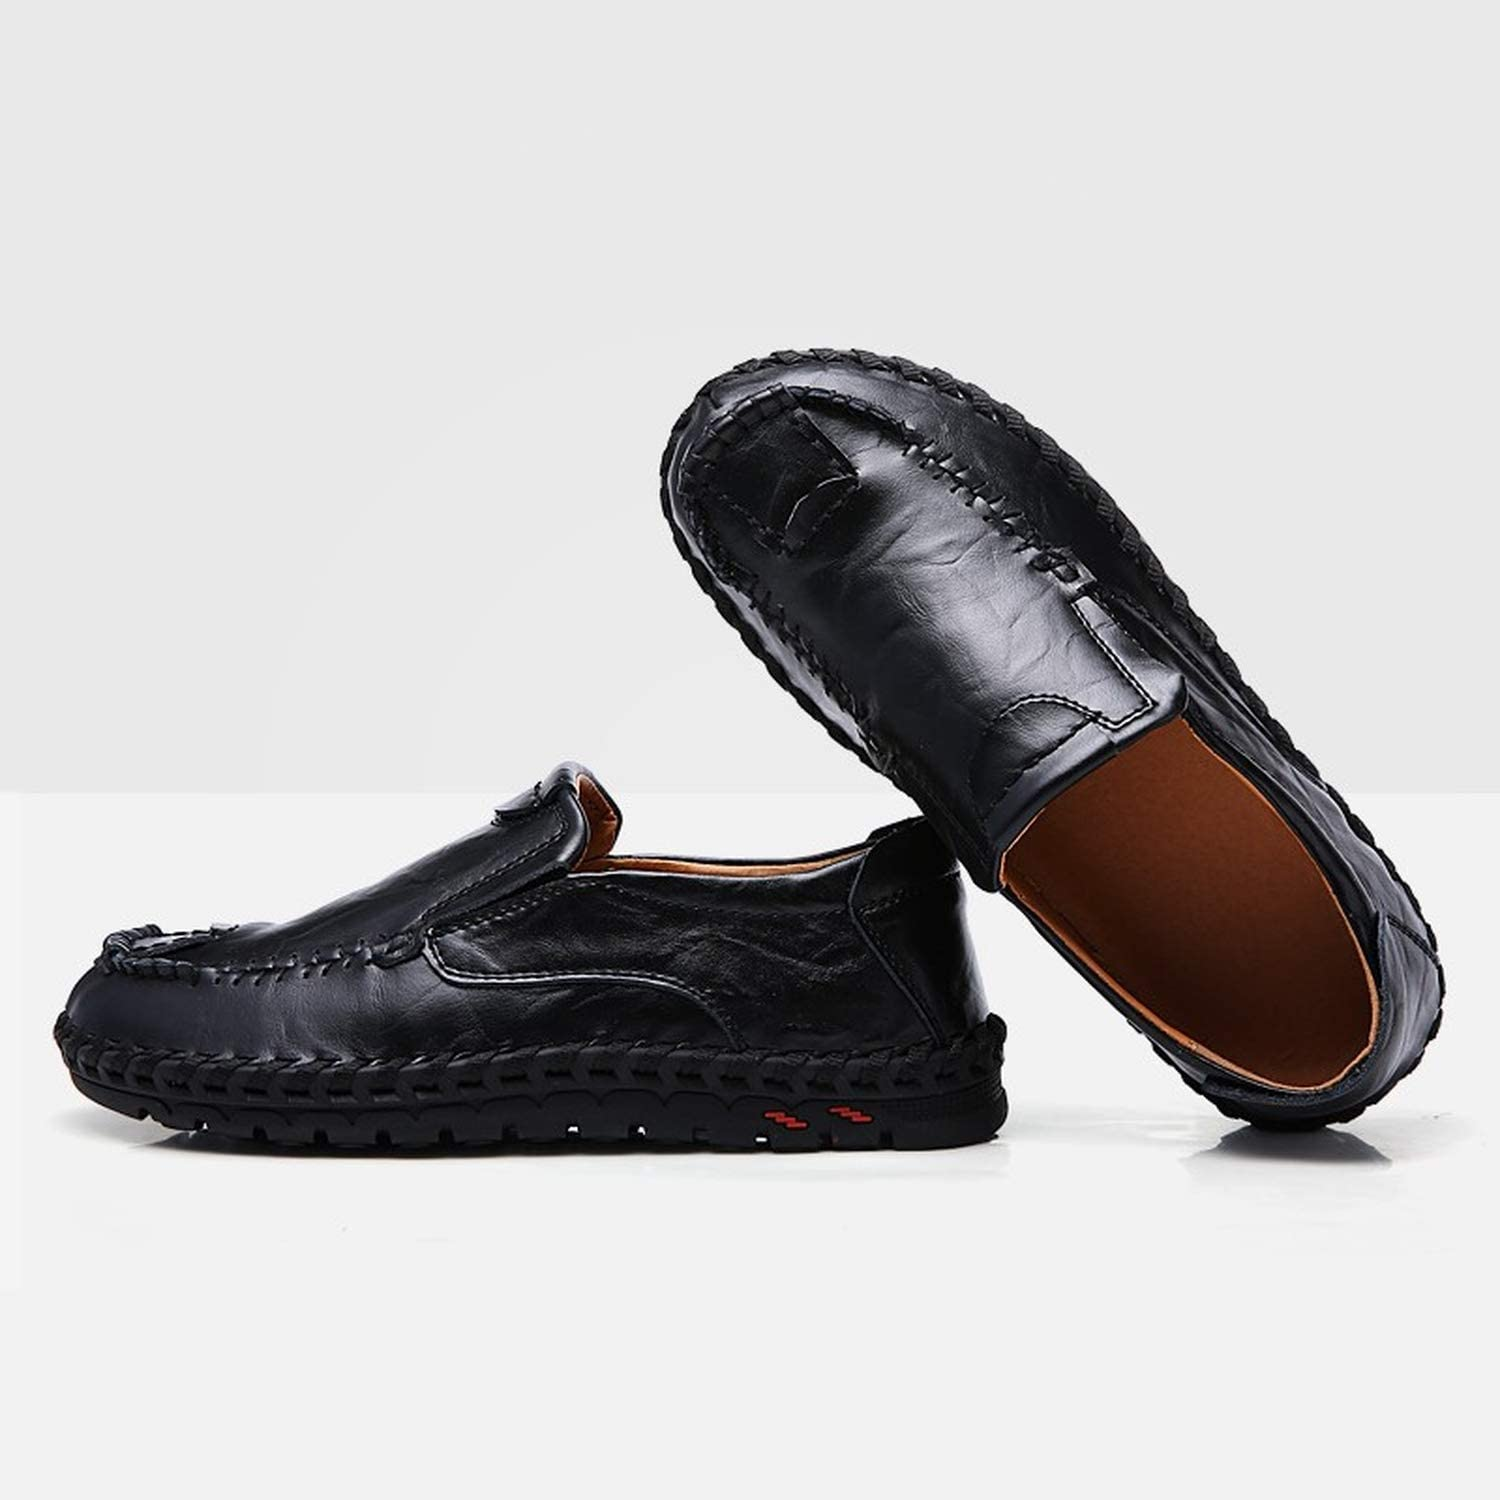 2019 Spring Casual Shoes Men Fashion Loafers Men Casual Driving Shoes Soft Moccasins Flats Slip On Footwear Men Big Size,Yellow,11